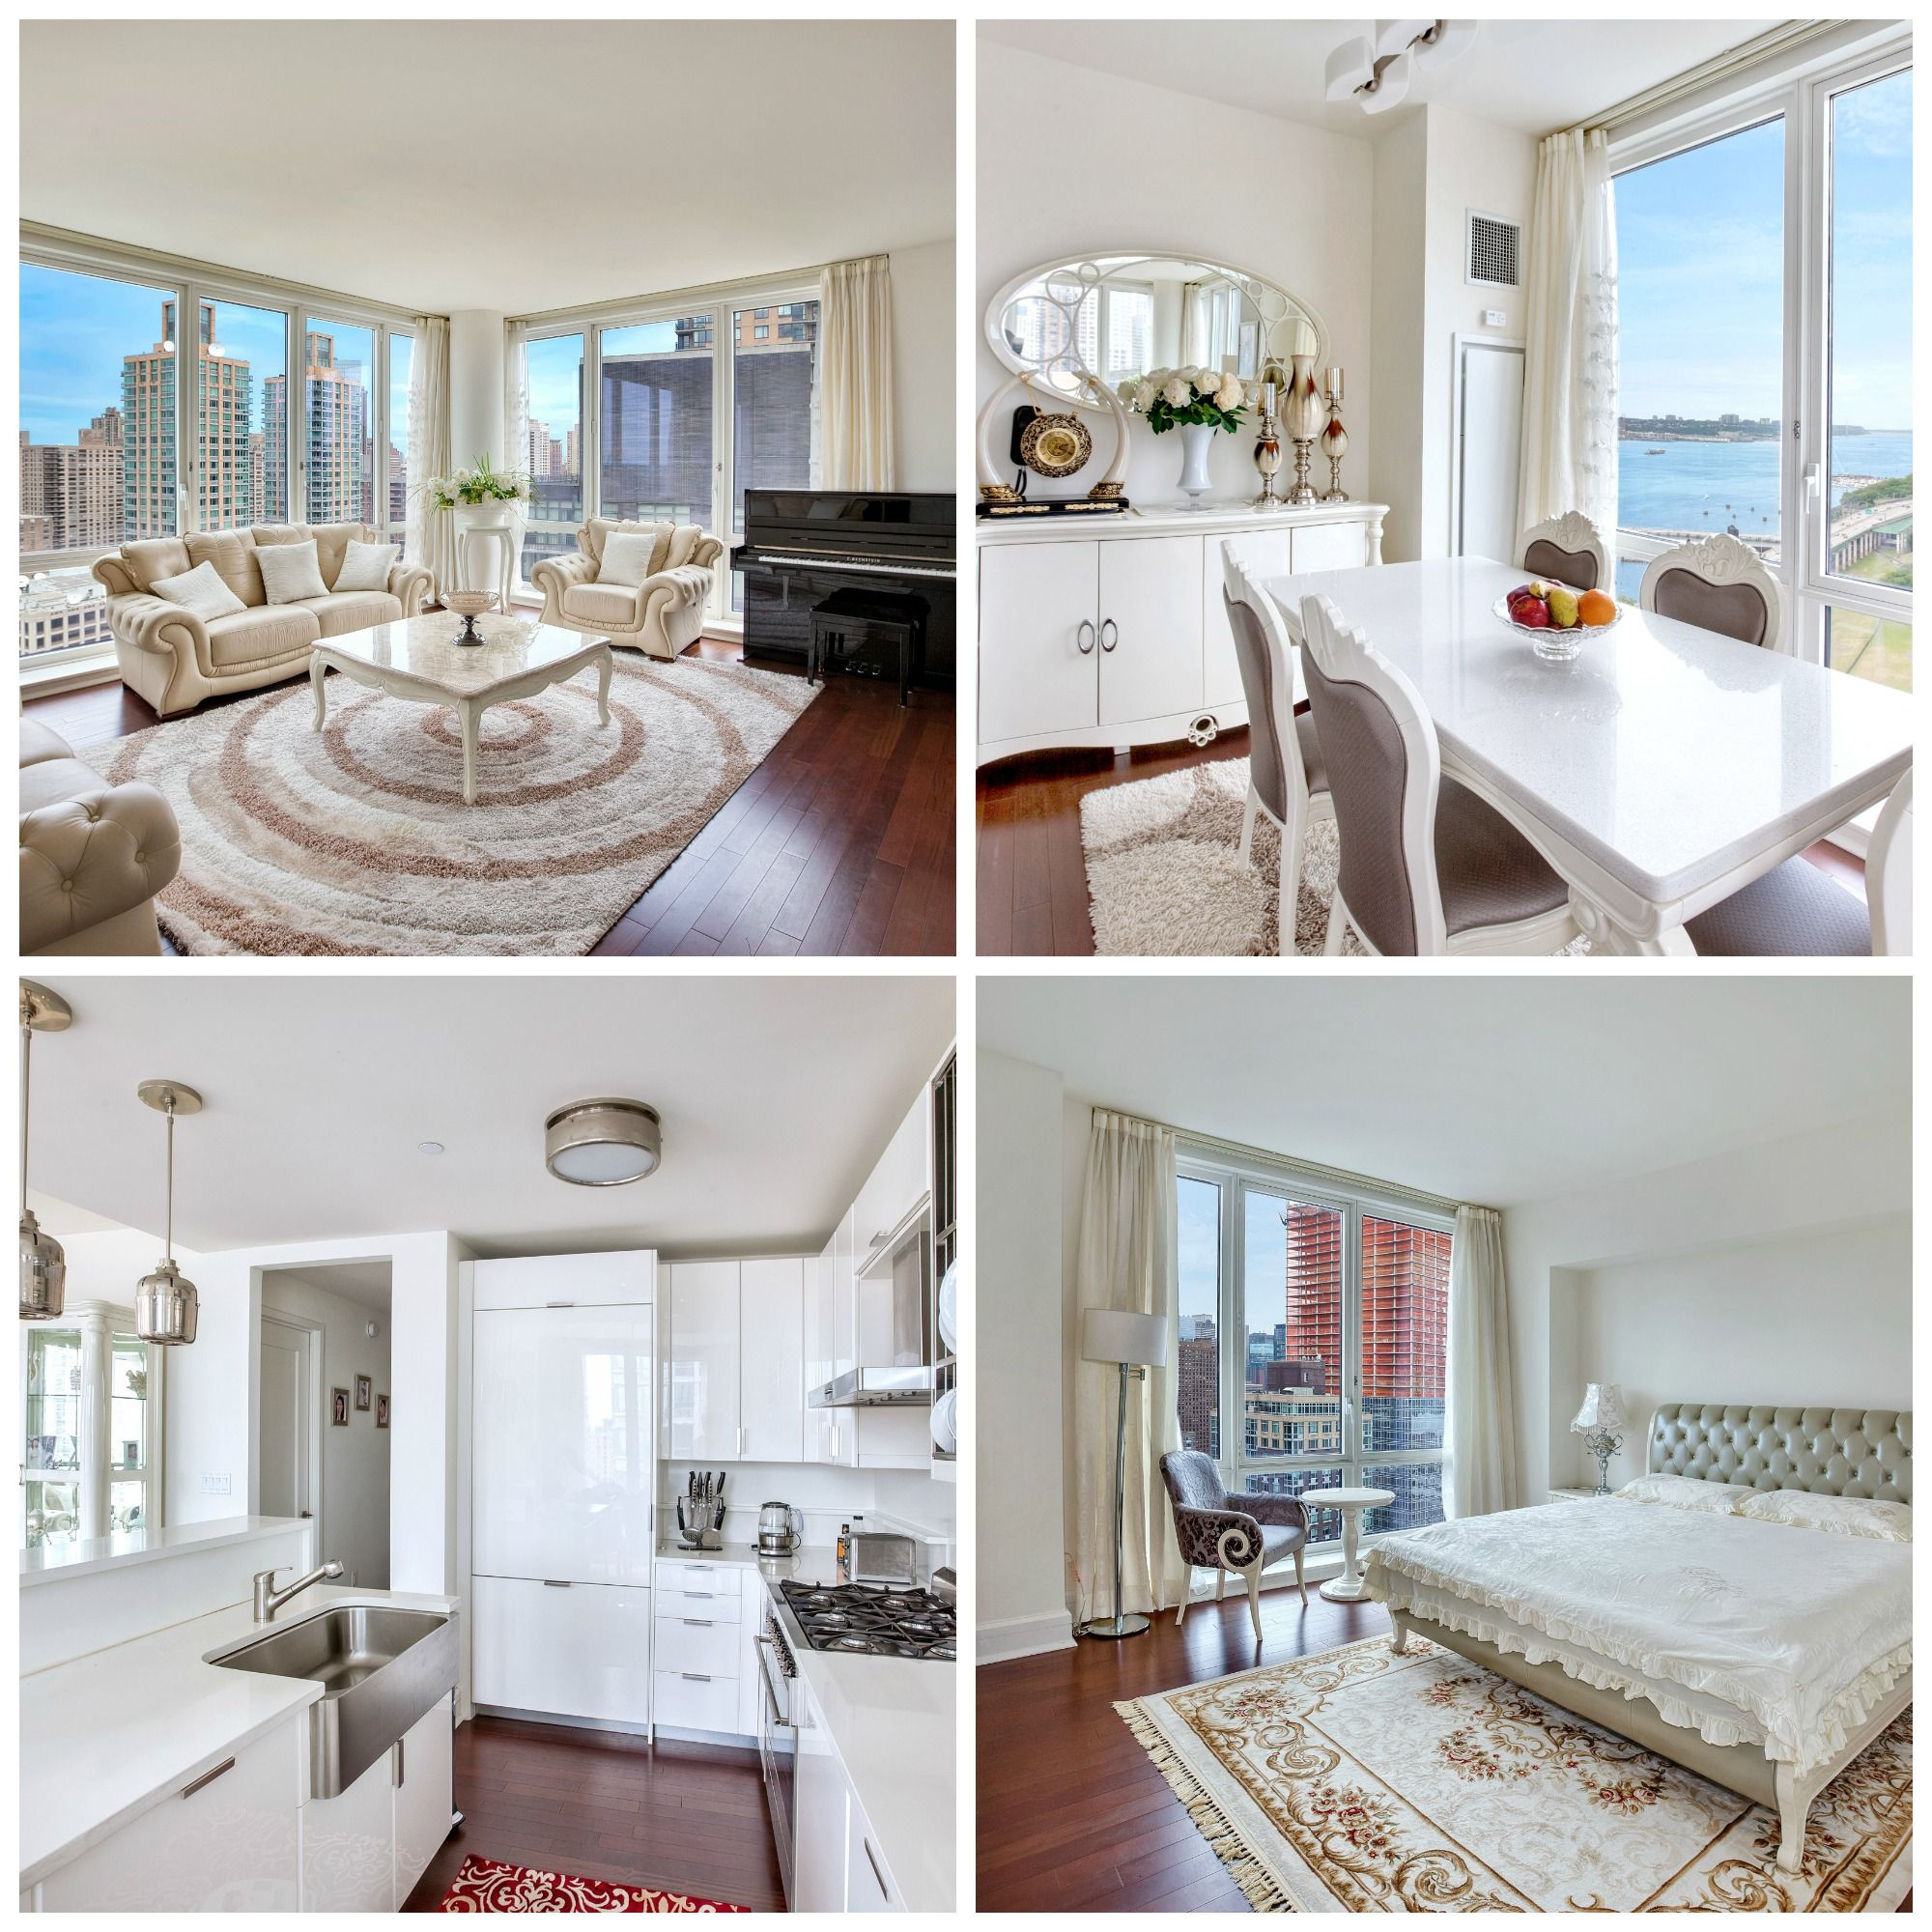 4 Bedrooms 3 Bathrooms Apartment for Sale in Upper West